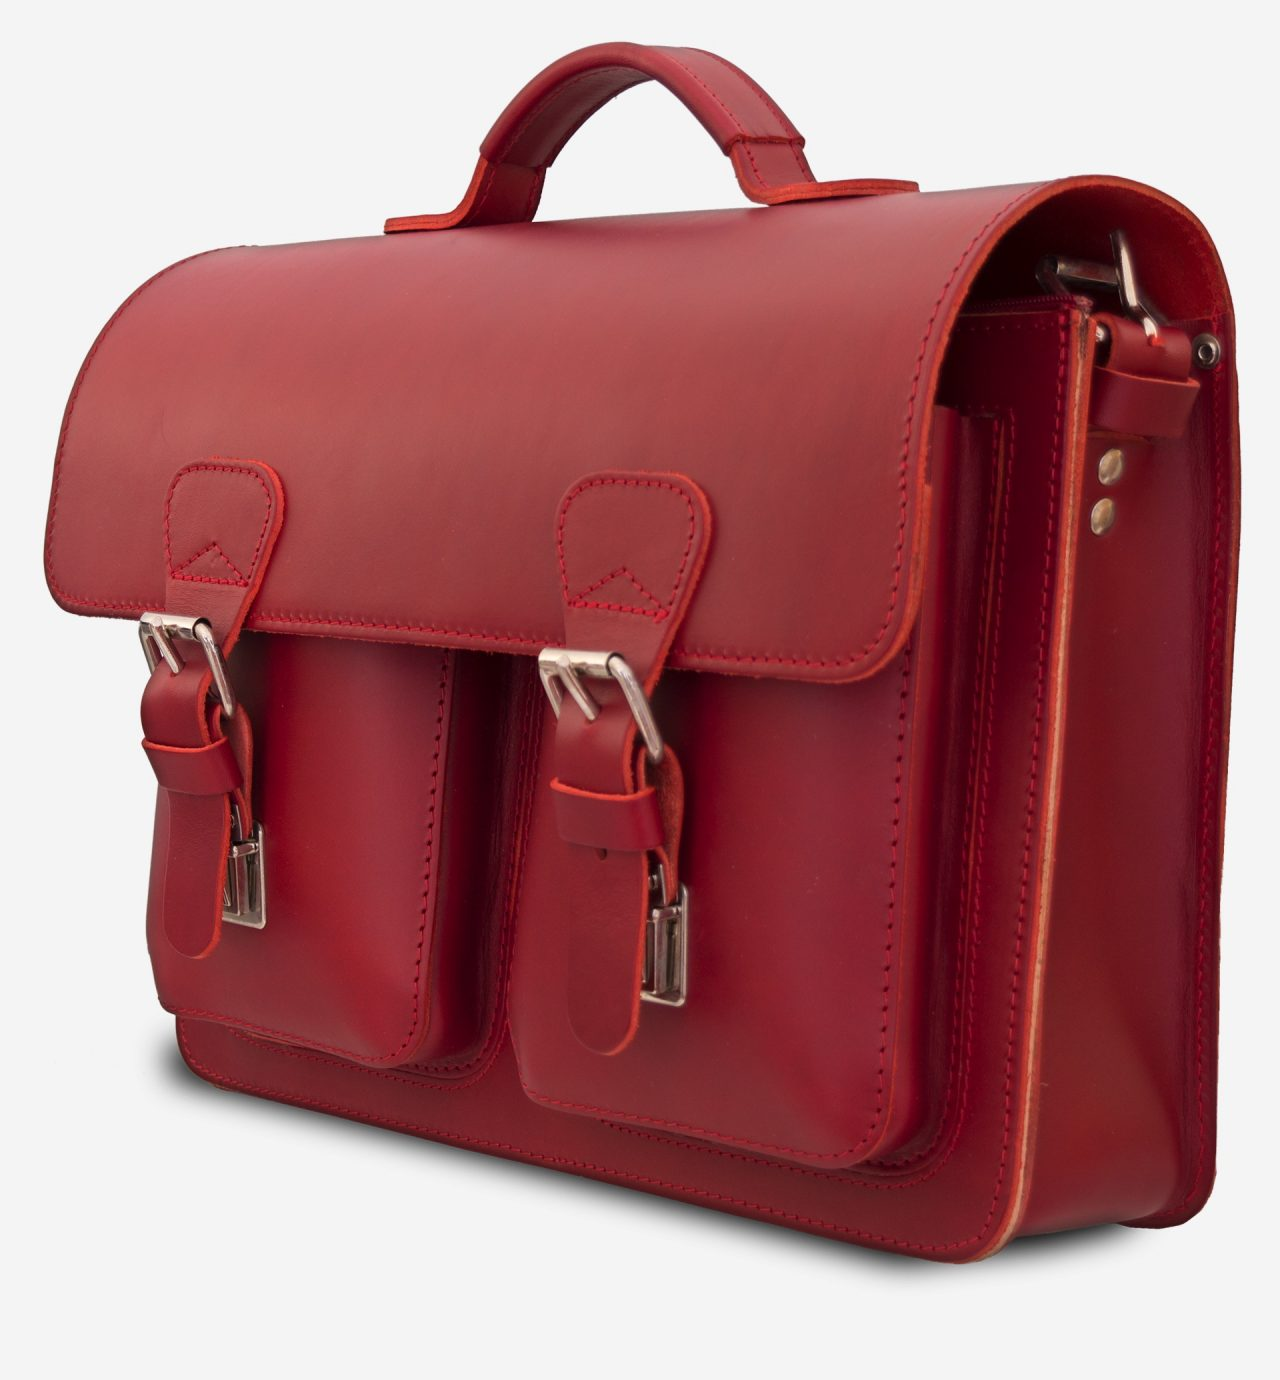 Side view of red leather briefcase bag with 1 compartment for women - 152131.